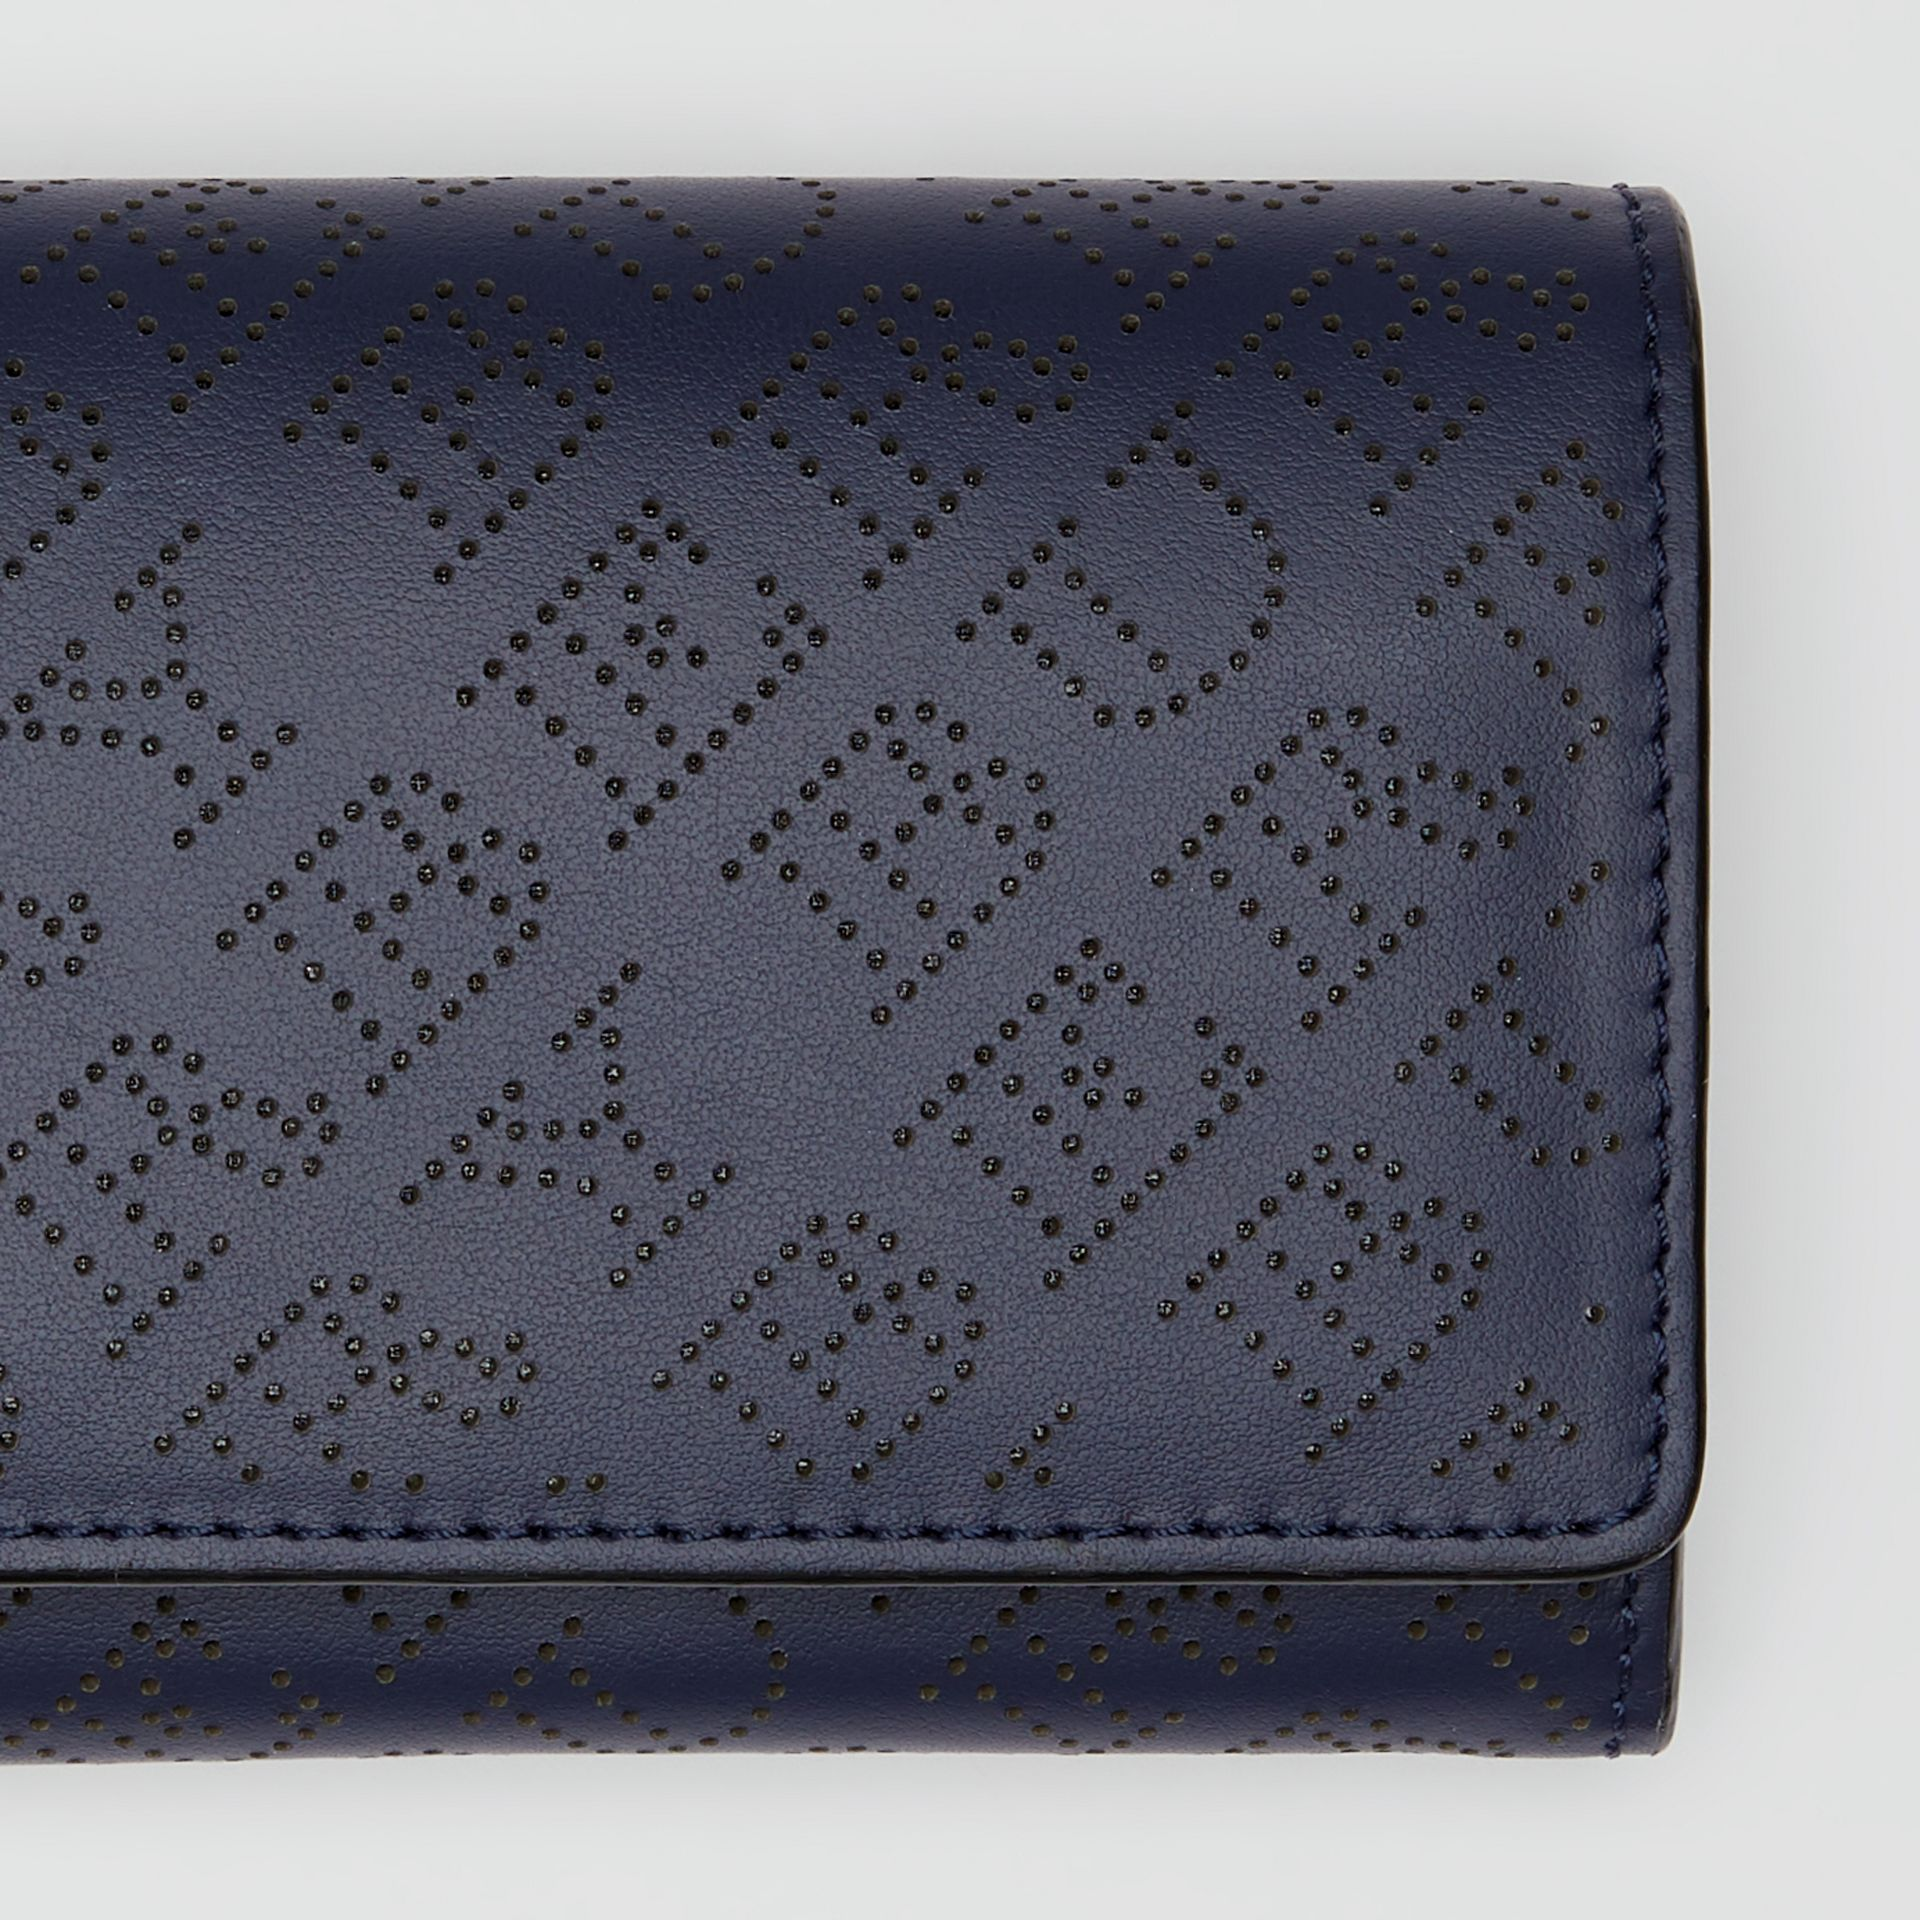 Perforated Logo Leather Continental Wallet in Navy - Women | Burberry - gallery image 1